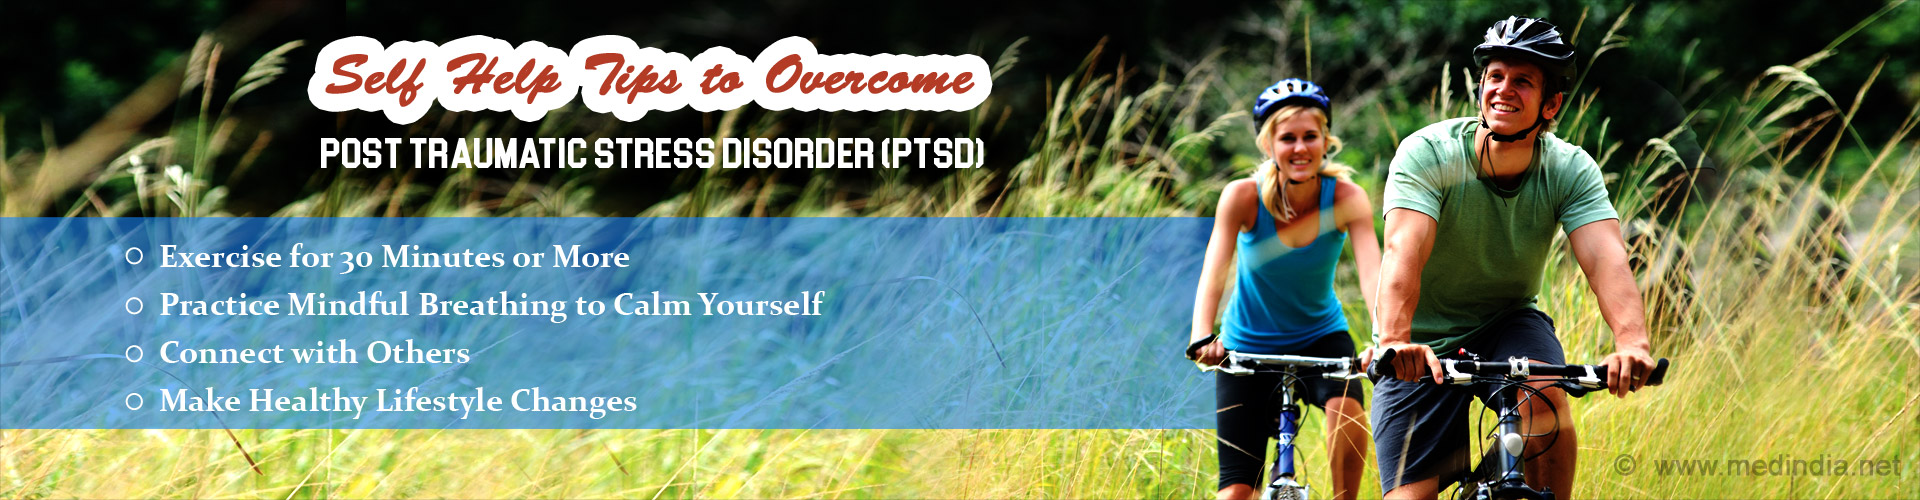 Self Help Tips to Overcome Post Traumatic Stress Disorder (PTSD) - Exercise for 30 minutes or more - Practice mondful breathing to calm yourself - Connect with others - Make healthy lifestyle changes